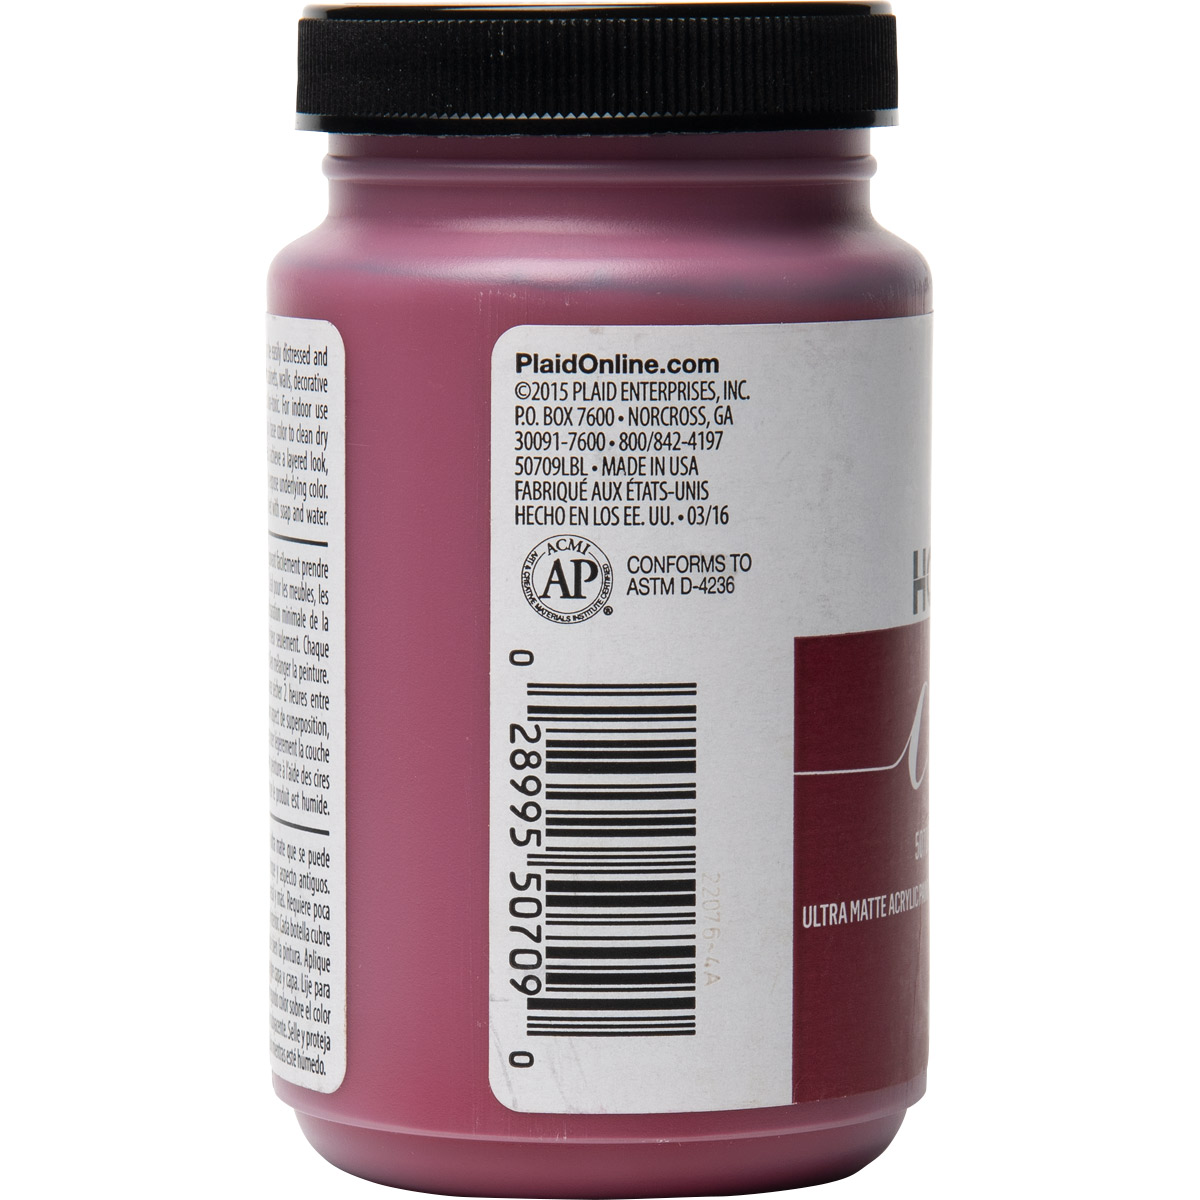 FolkArt ® Home Decor™ Chalk - Bordeaux, 8 oz.